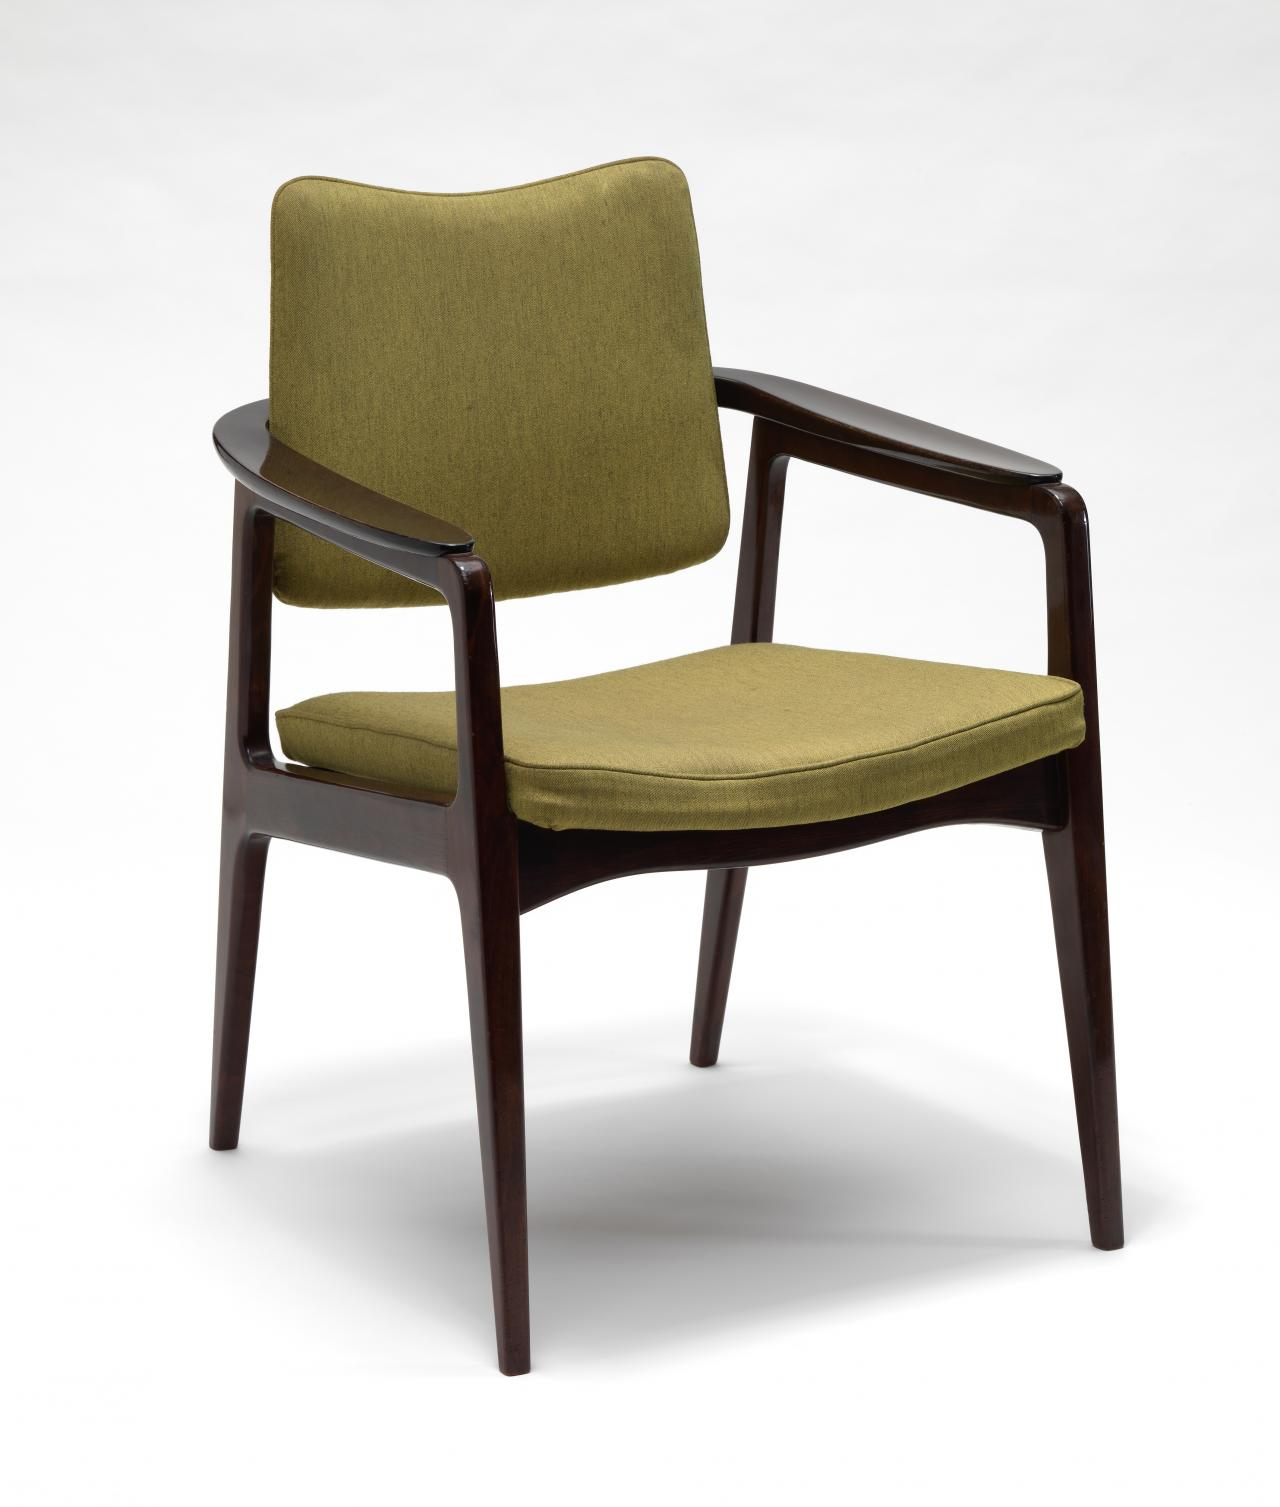 Armchair, model no. 132